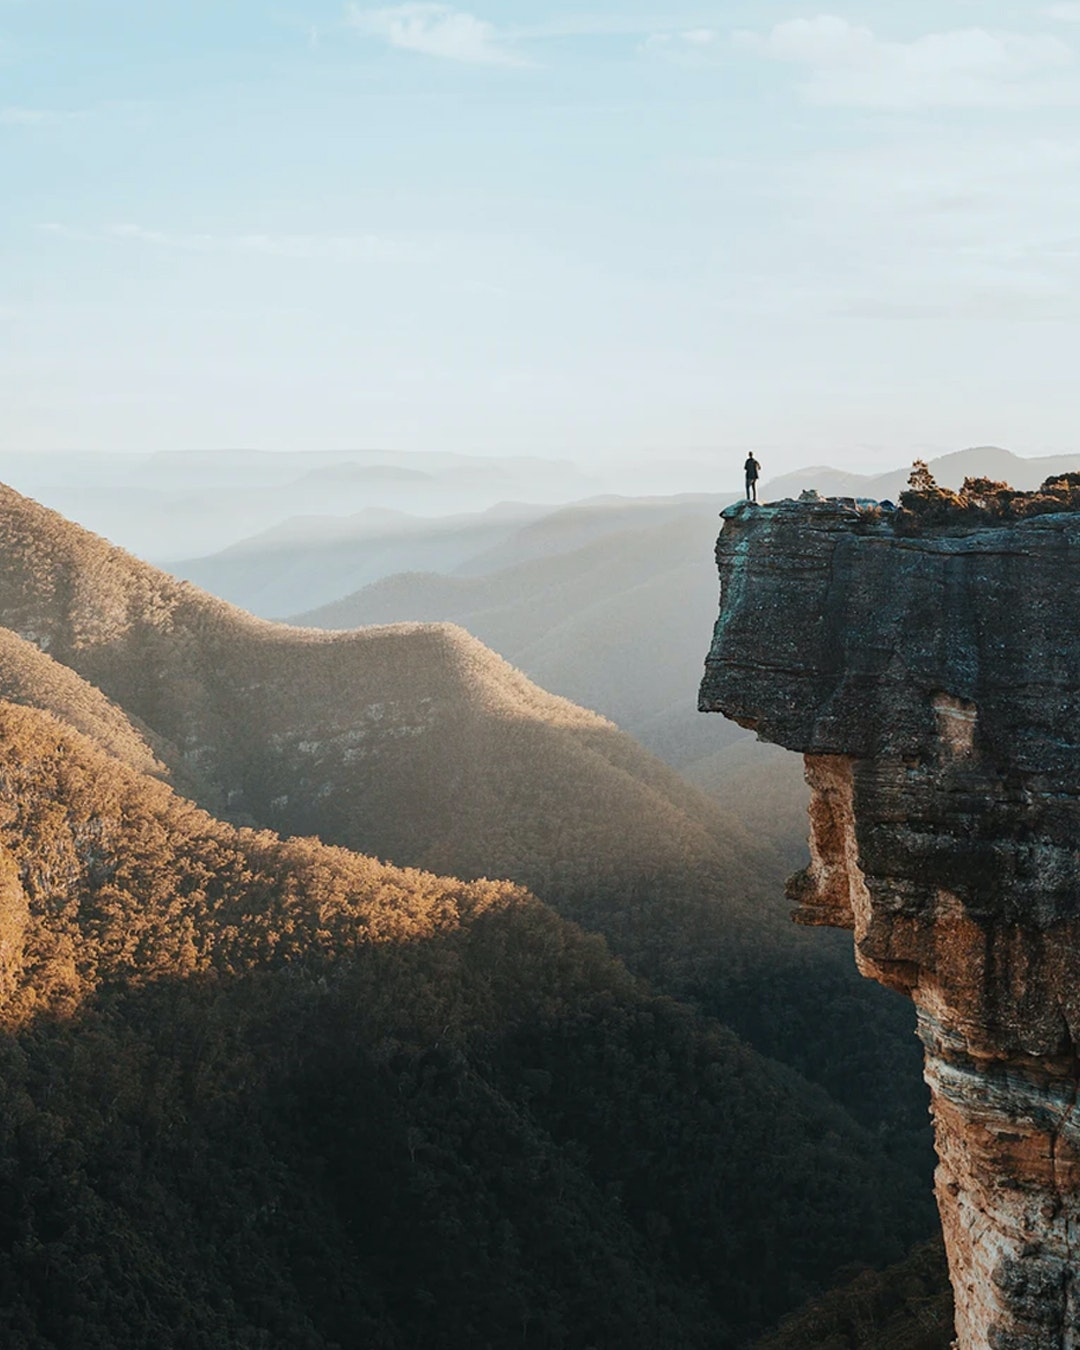 view from mountain in sydney's blue mountain ranges, man standing on edge of cliff